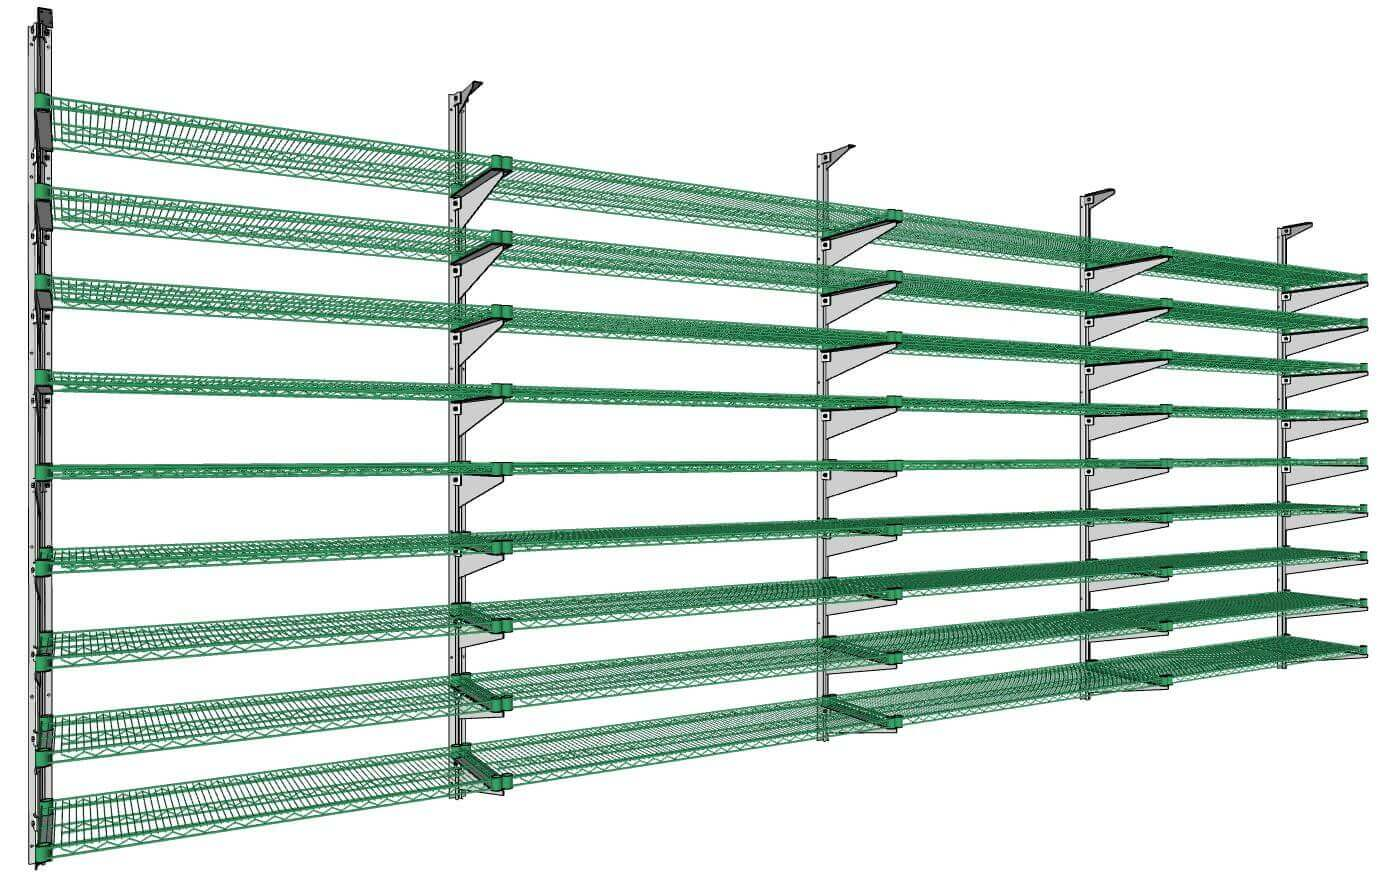 Walk-In Cooler Shelving Systems